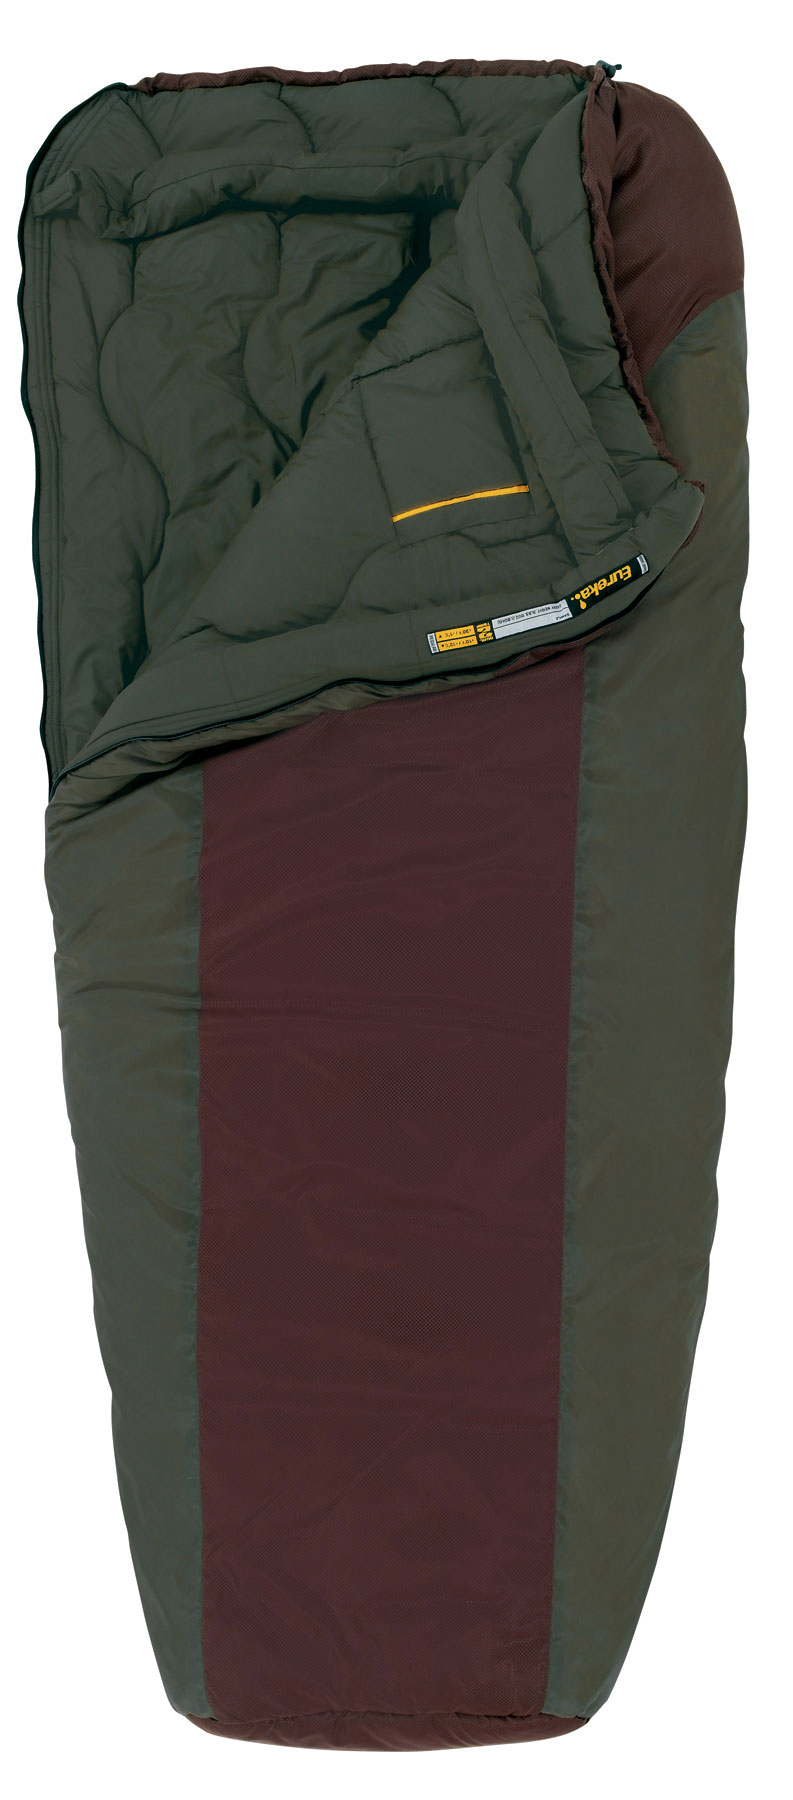 "Camp and Hike Key Features Eureka Dual Temp 10/30 Sleeping Bag: Dual Temp design utilizes differing layers of insulation on the chest and back of the bag, creating a versatile sleeping bag with 2 different temperature ratings by simply turning the bag over. Insulation Rteq insulation is a proprietary blend of 4 unique polyester fibers, each chosen for its specific characteristics of denier, loft, weight, and thermal efficiency. This advanced blend provides the perfect balance of warmth, durability, and compressibility that make Eureka! bags the ideal choice for users who need a lightweight bag and minimal pack size! Hybrid-Rectangular Design: The unique, hybrid-rectangular design of the Dual Temp 10/30 strikes a balance between performance and comfort. The tapered lower portion helps reduce the bag's overall weight and bulk, while the contoured top opening reduces heat loss. Lining: The warm-to-touch, peached polyester lining combines the performance value of a synthetic fabric with the soft feel of cotton. The slightly fuzzy texture provides added warmth and comfort in any condition. Foot Box: The anatomically designed trapezoidal foot box allows for a comfortable night's sleep by letting your feet rest in their natural position. Draft Collar's: The draft collar's extra baffle of insulation fits comfortably around your torso, providing an extra barrier against cold air infiltration ensuring you stay warm all night. Fit: Regular Size: 72"" x 33"" x 30"" - $99.95"